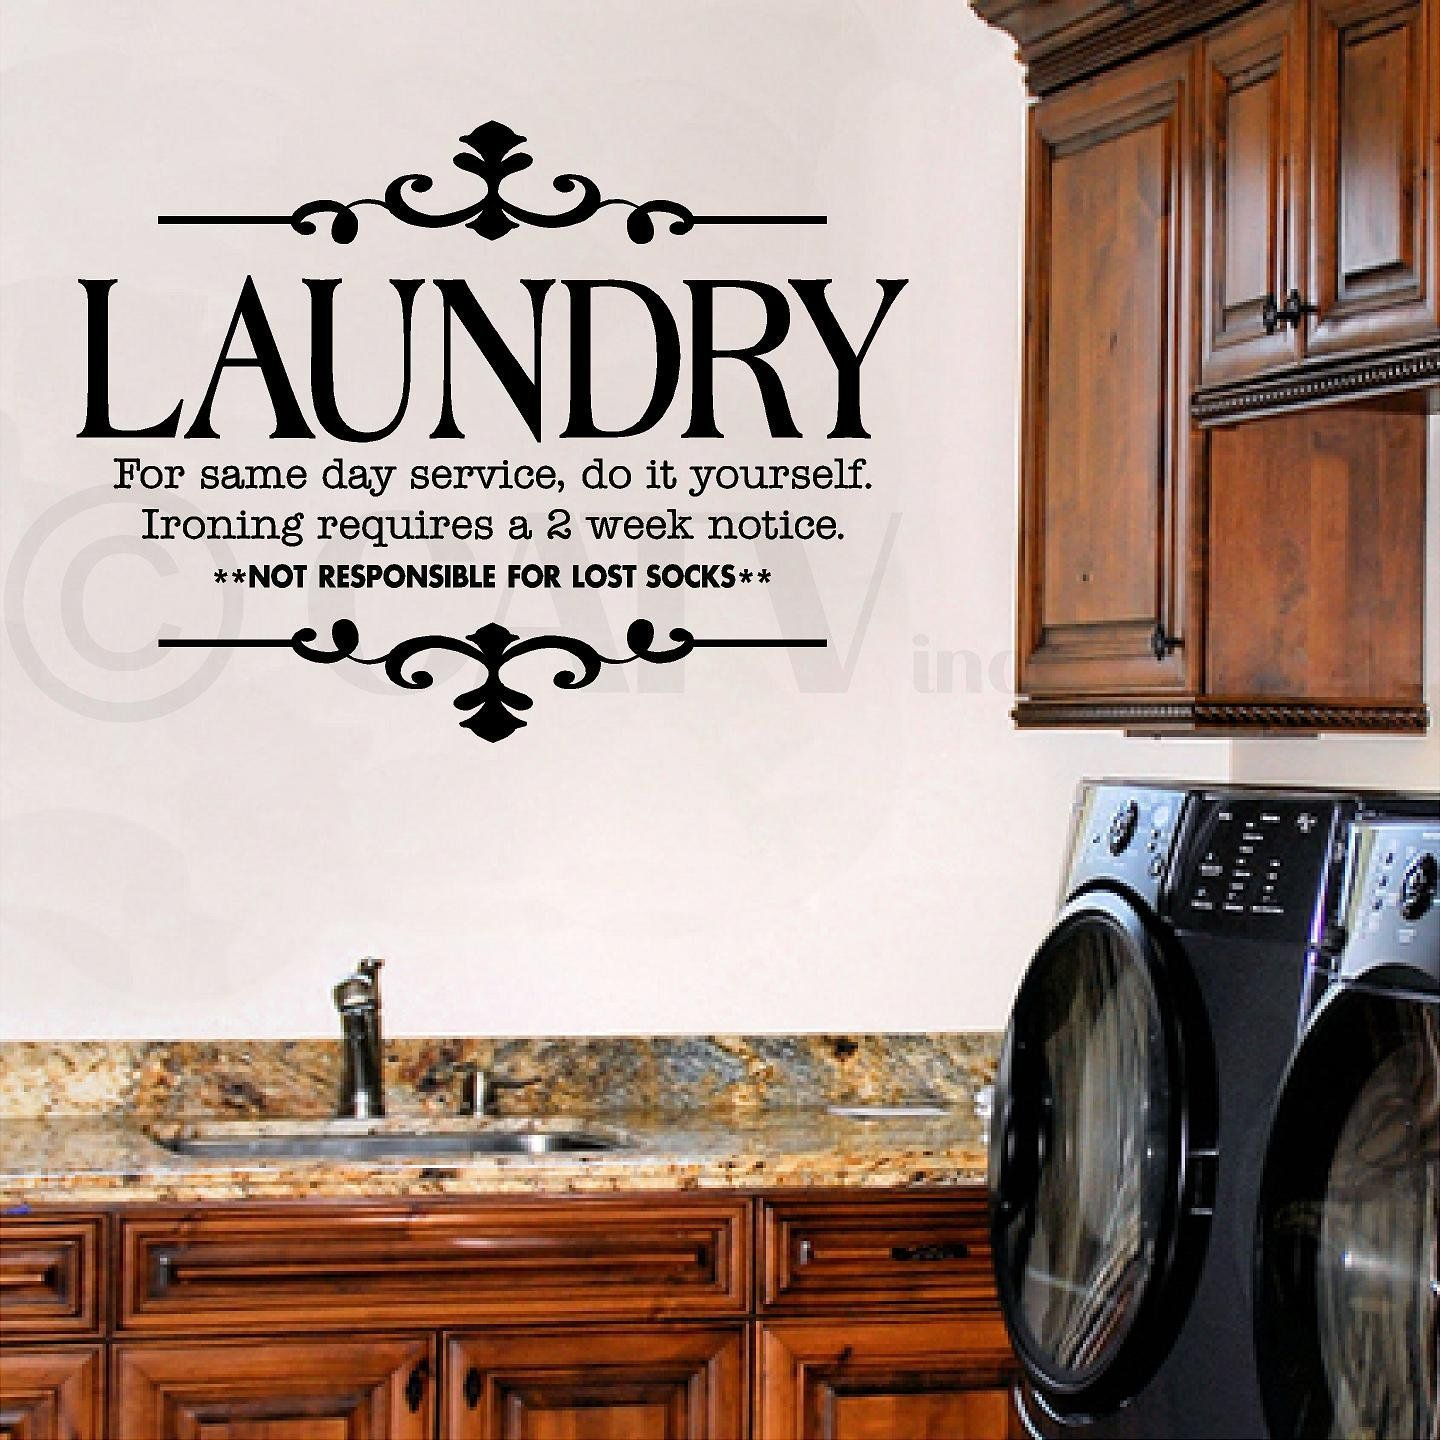 Laundry Room Wall Words Laundry For Same Day Service Do It Yourselfironing Requires A 2